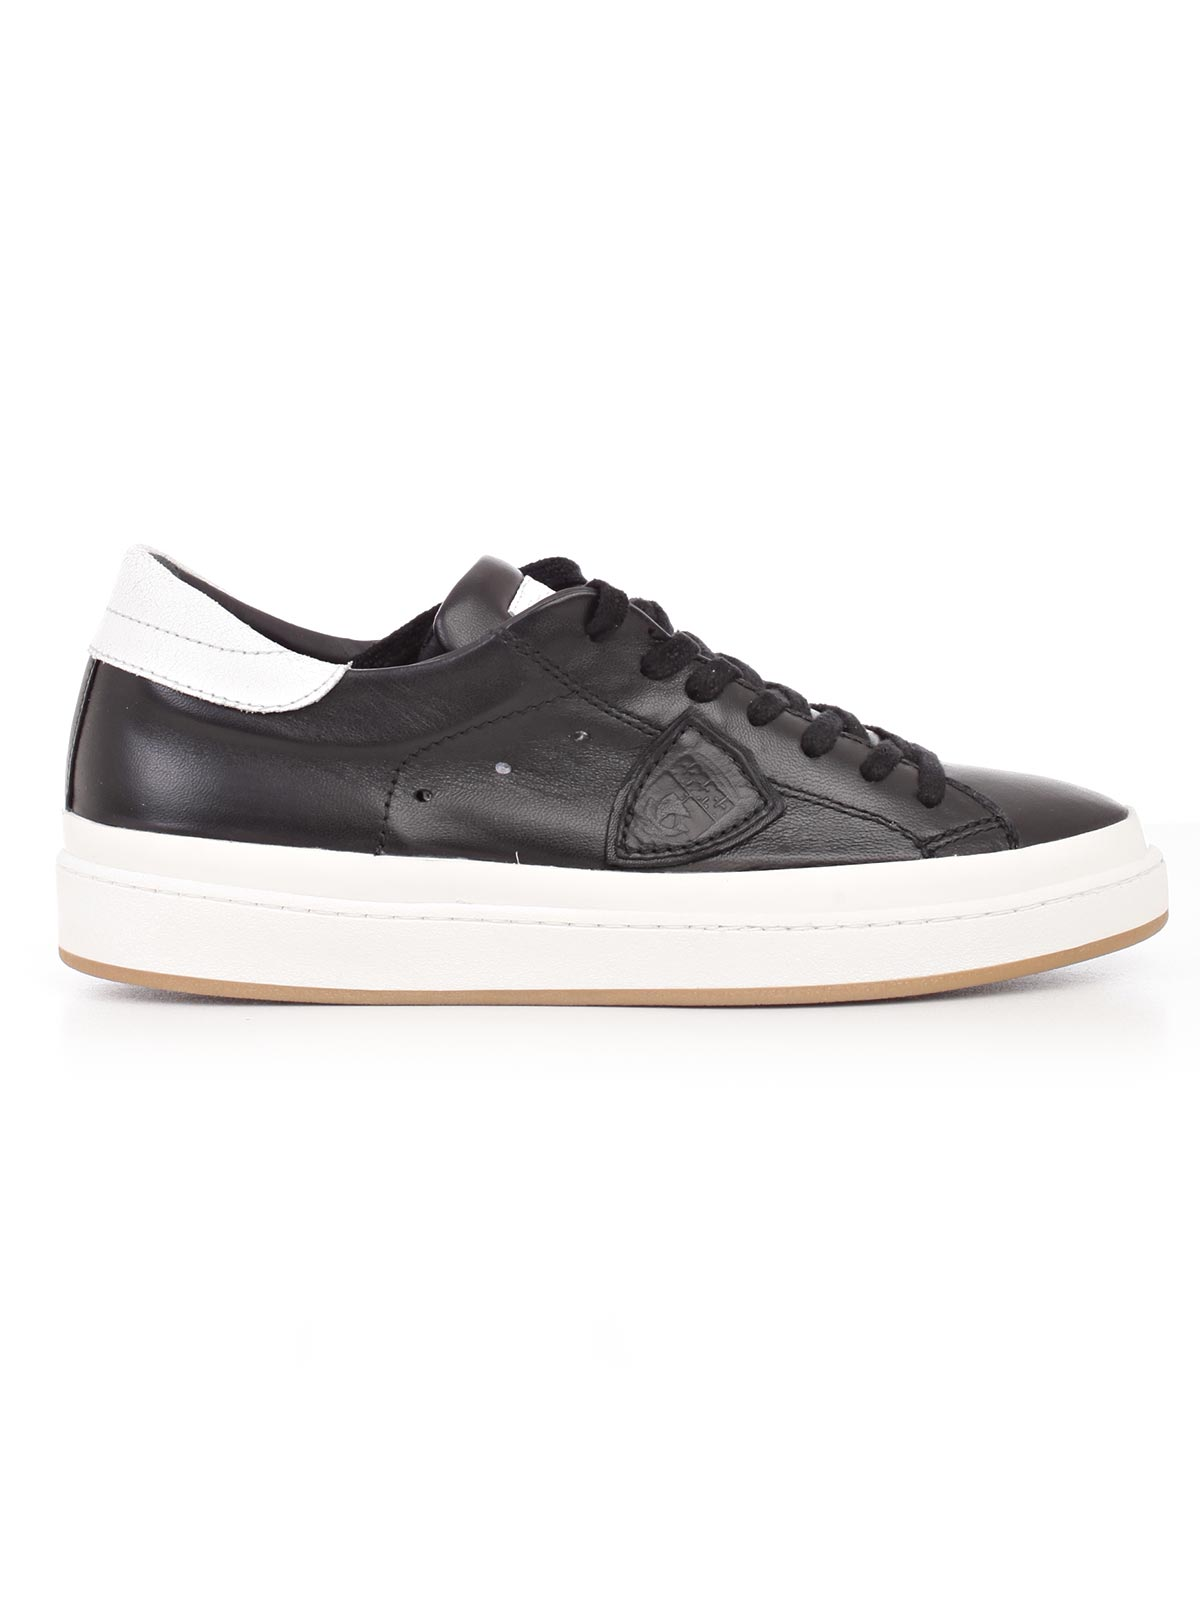 Picture of PHILIPPE MODEL FOOTWEAR SCARPA LAKERS BASSA